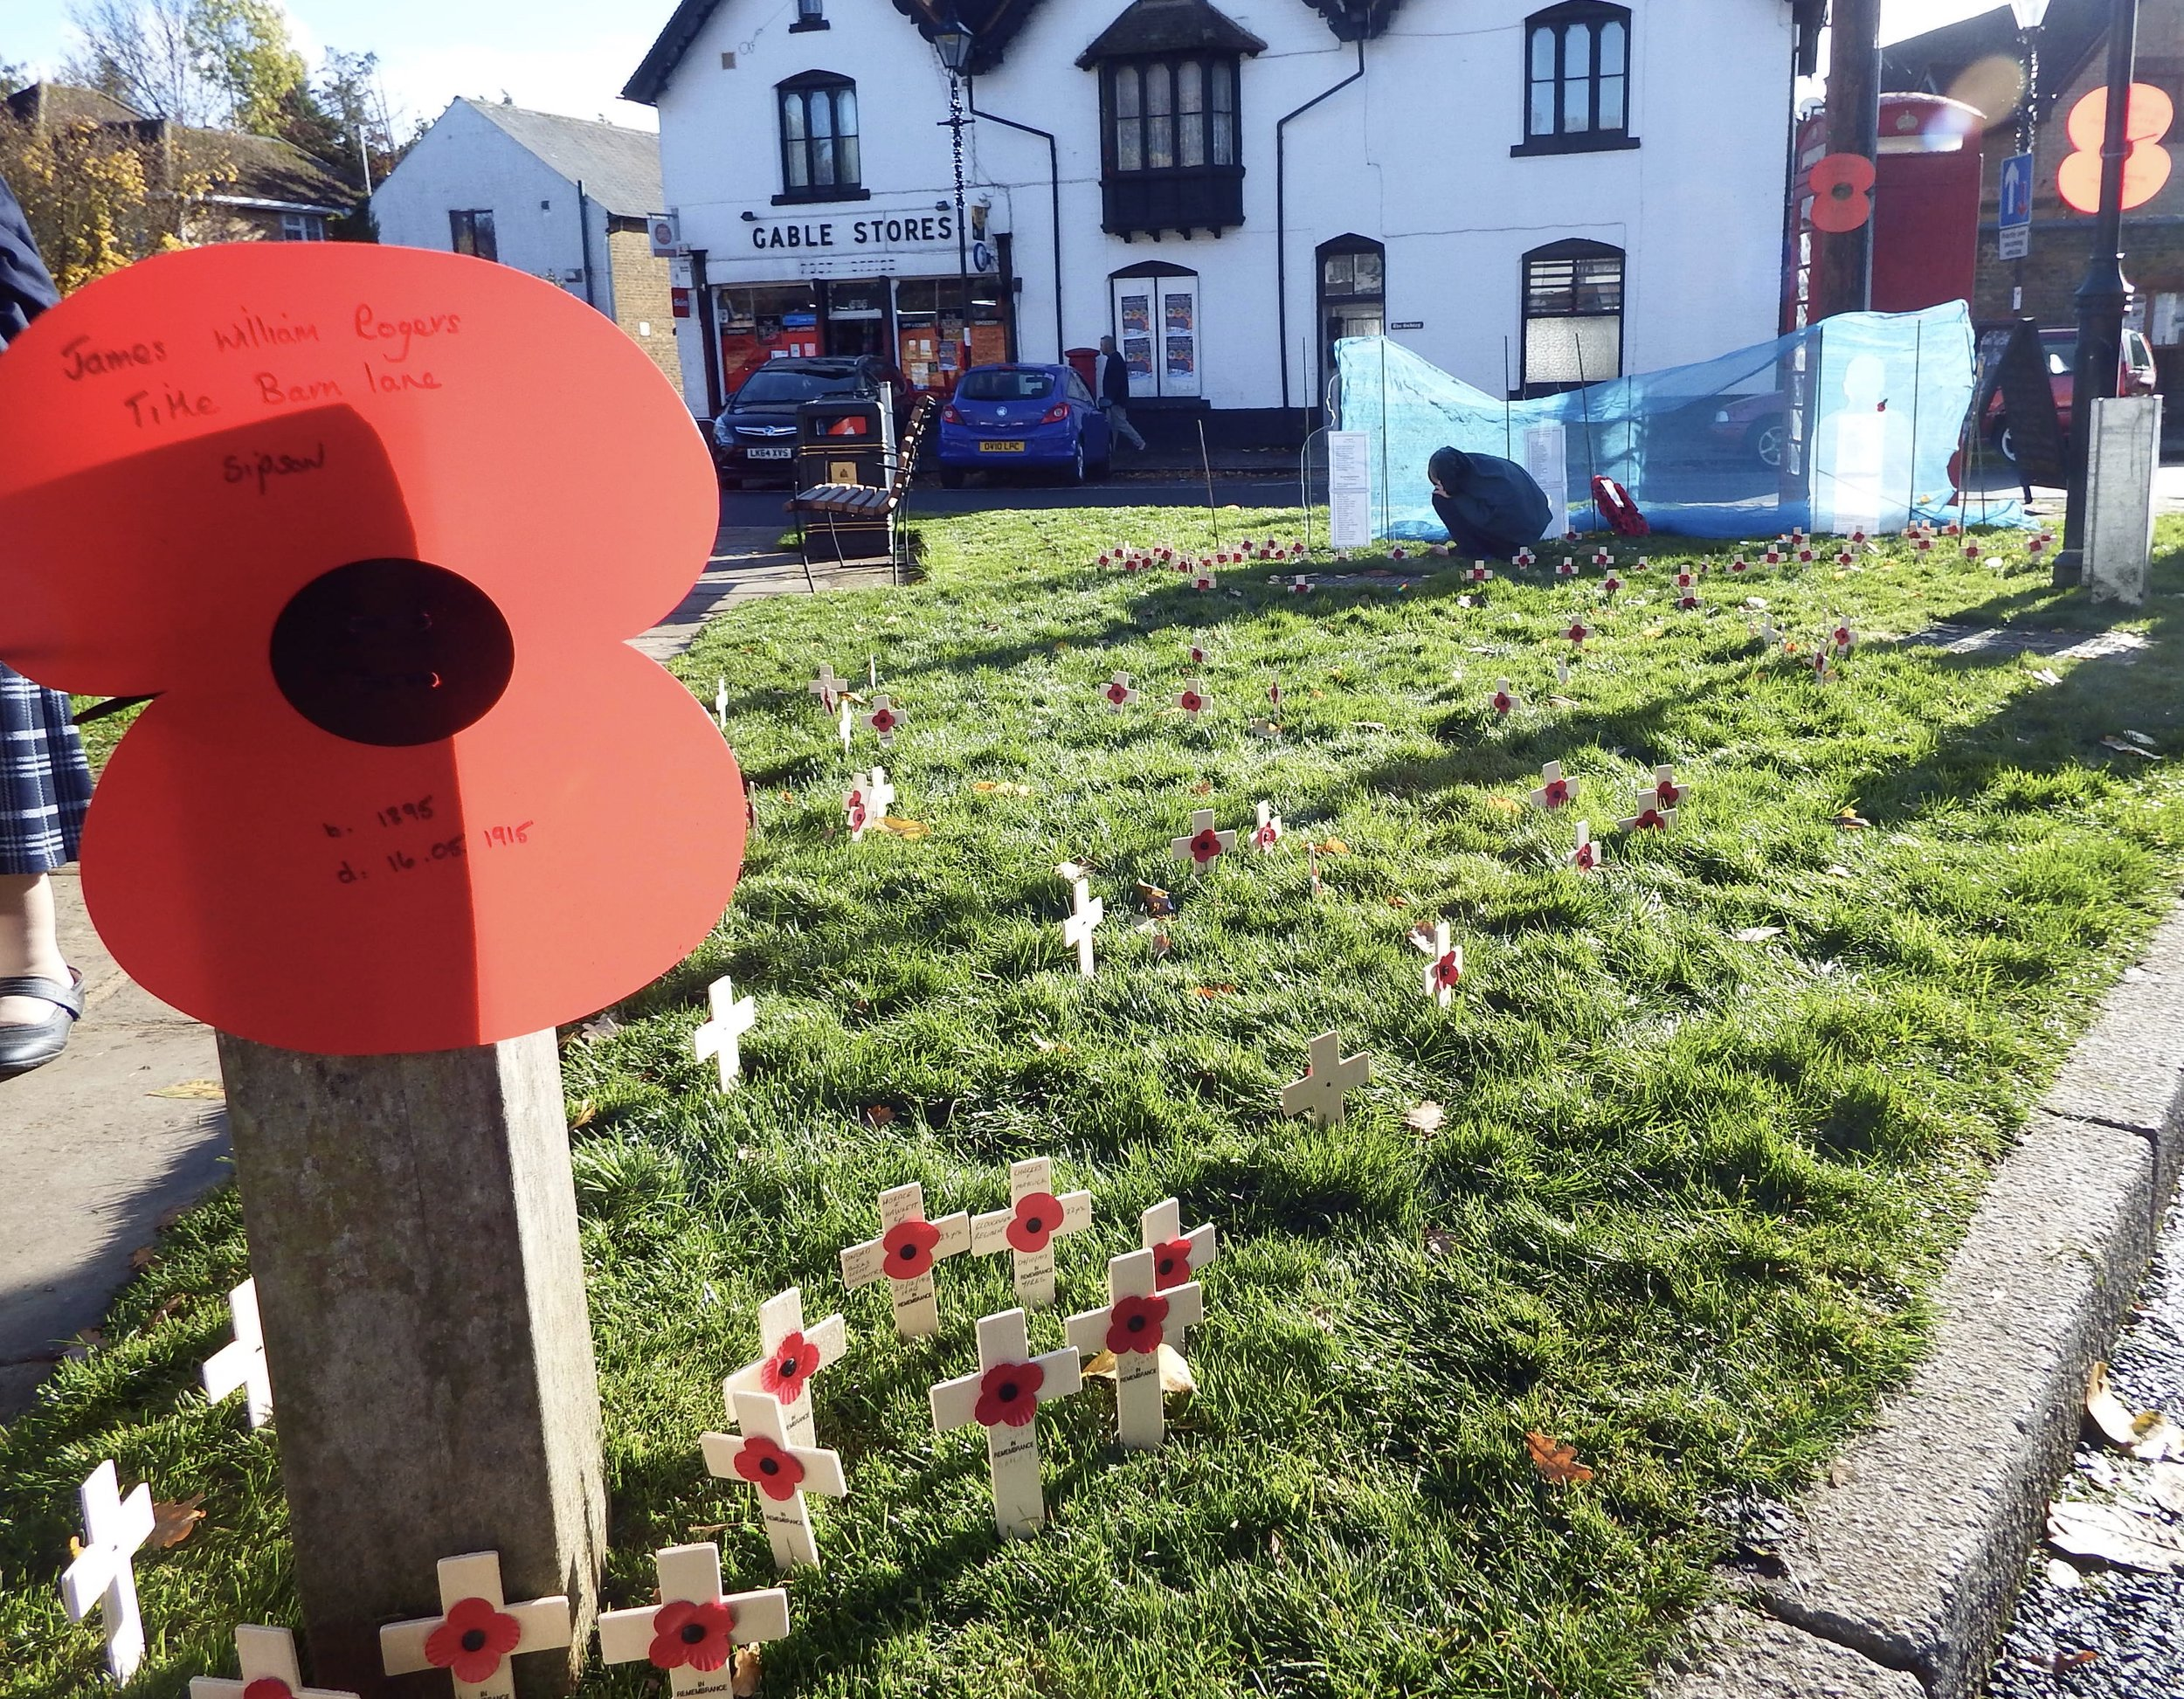 One hundred crosses were planted on the village green in remembrance